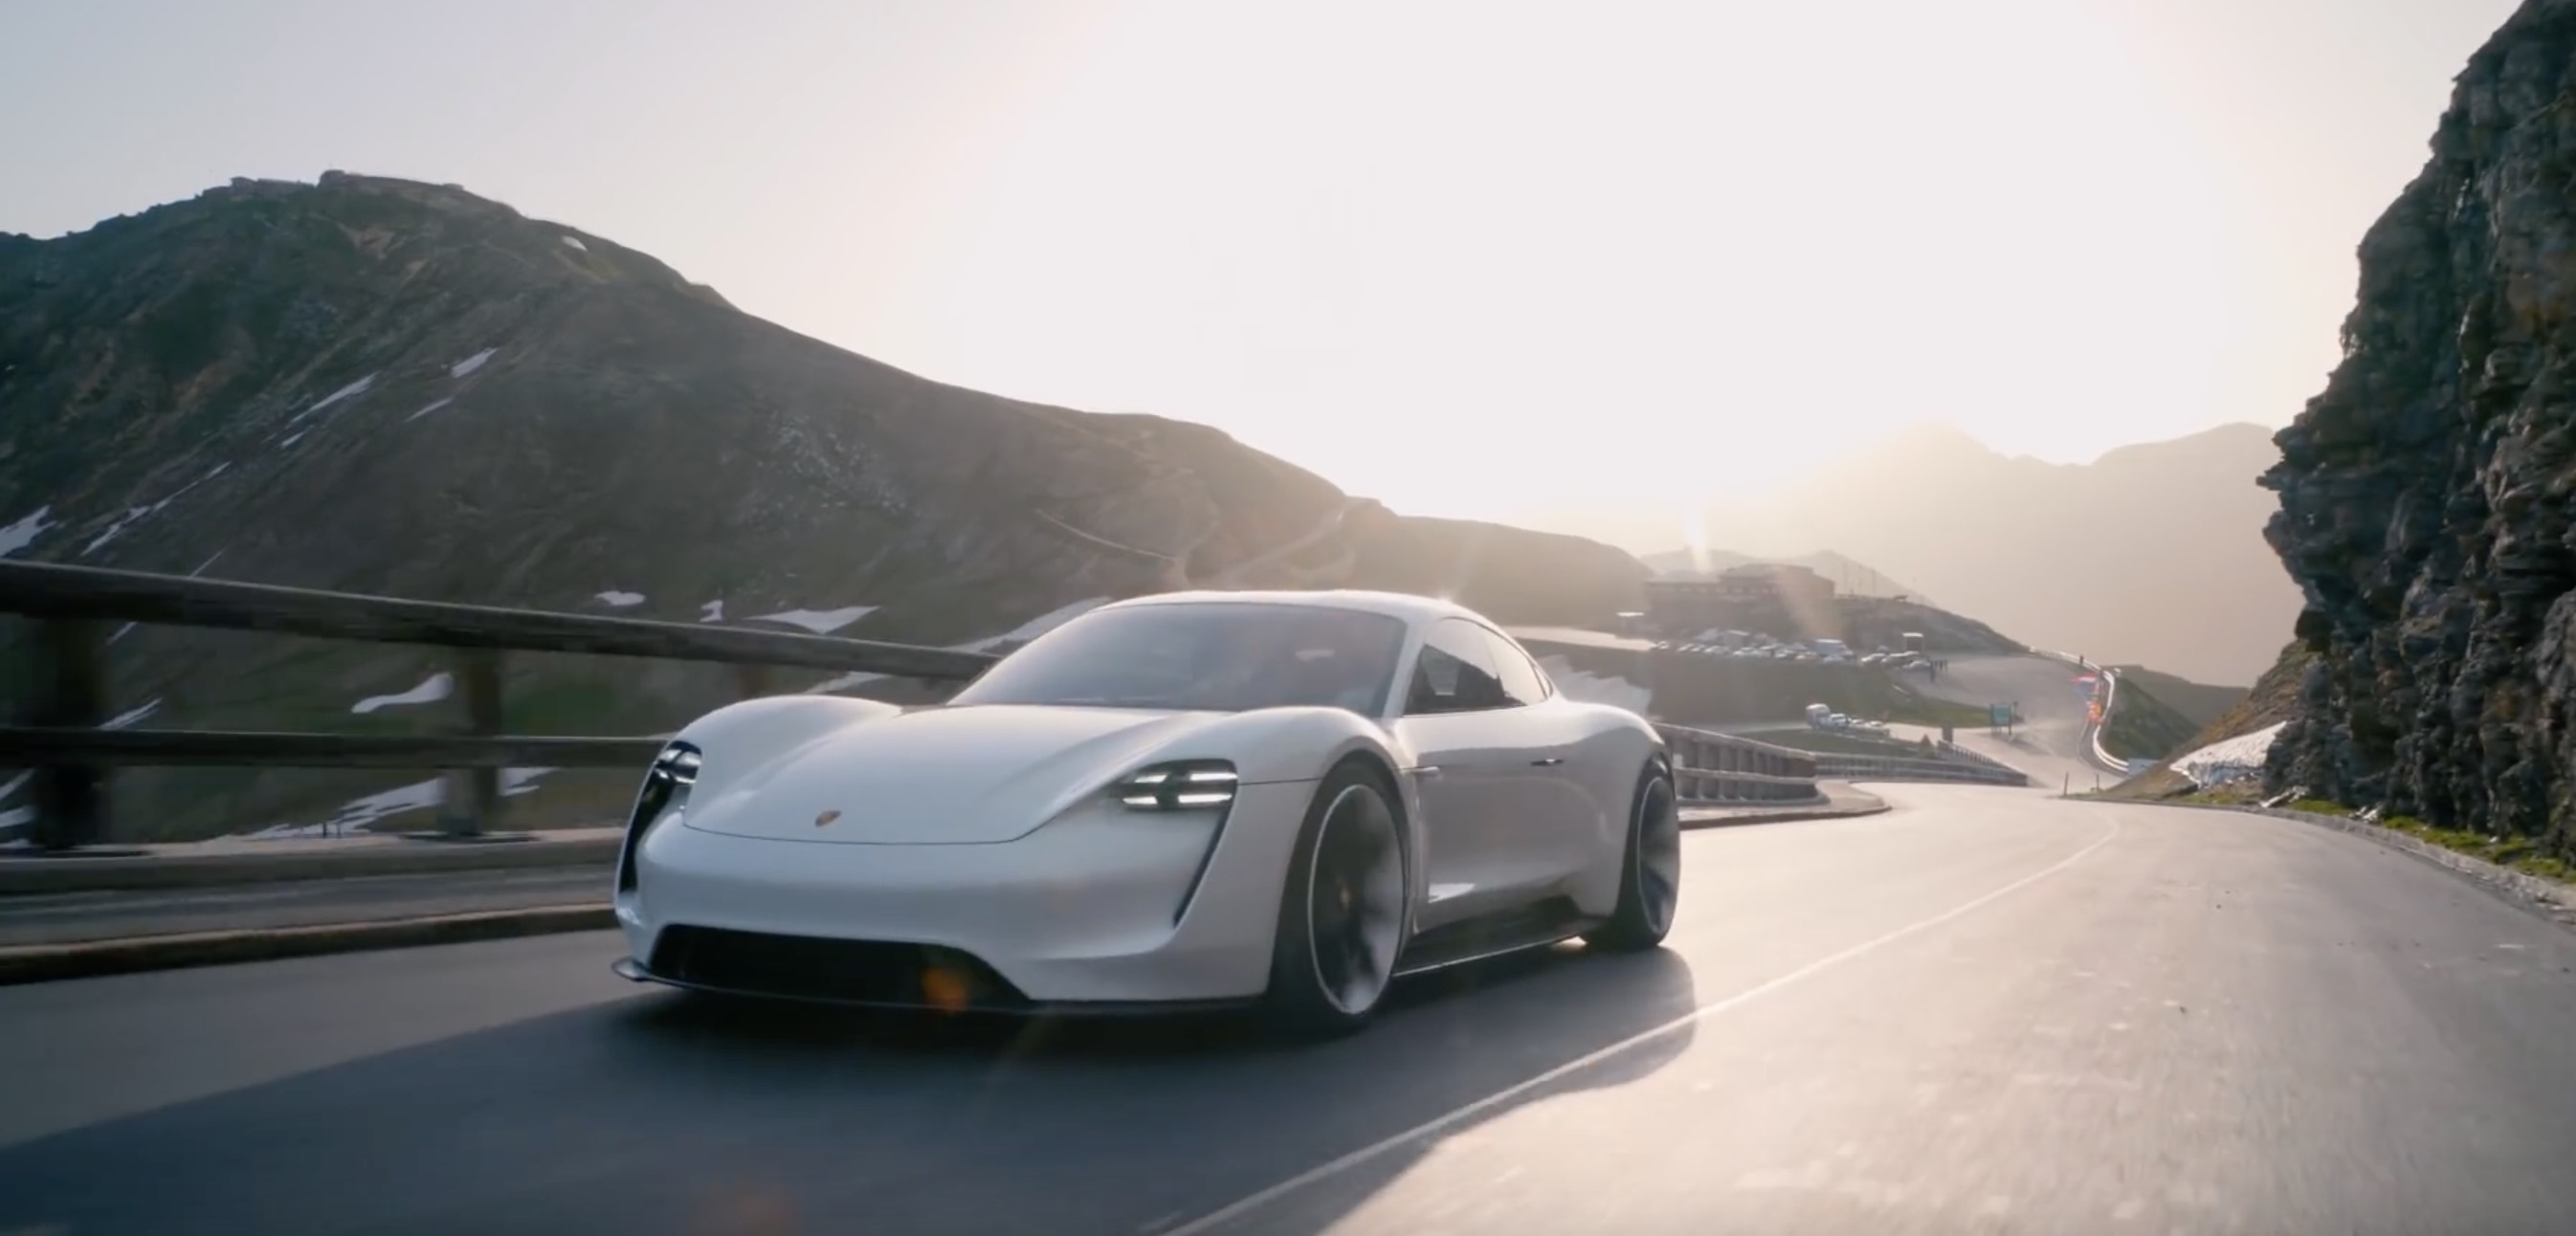 The Porsche Taycan Is Arguably Most Aned Electric Vehicle